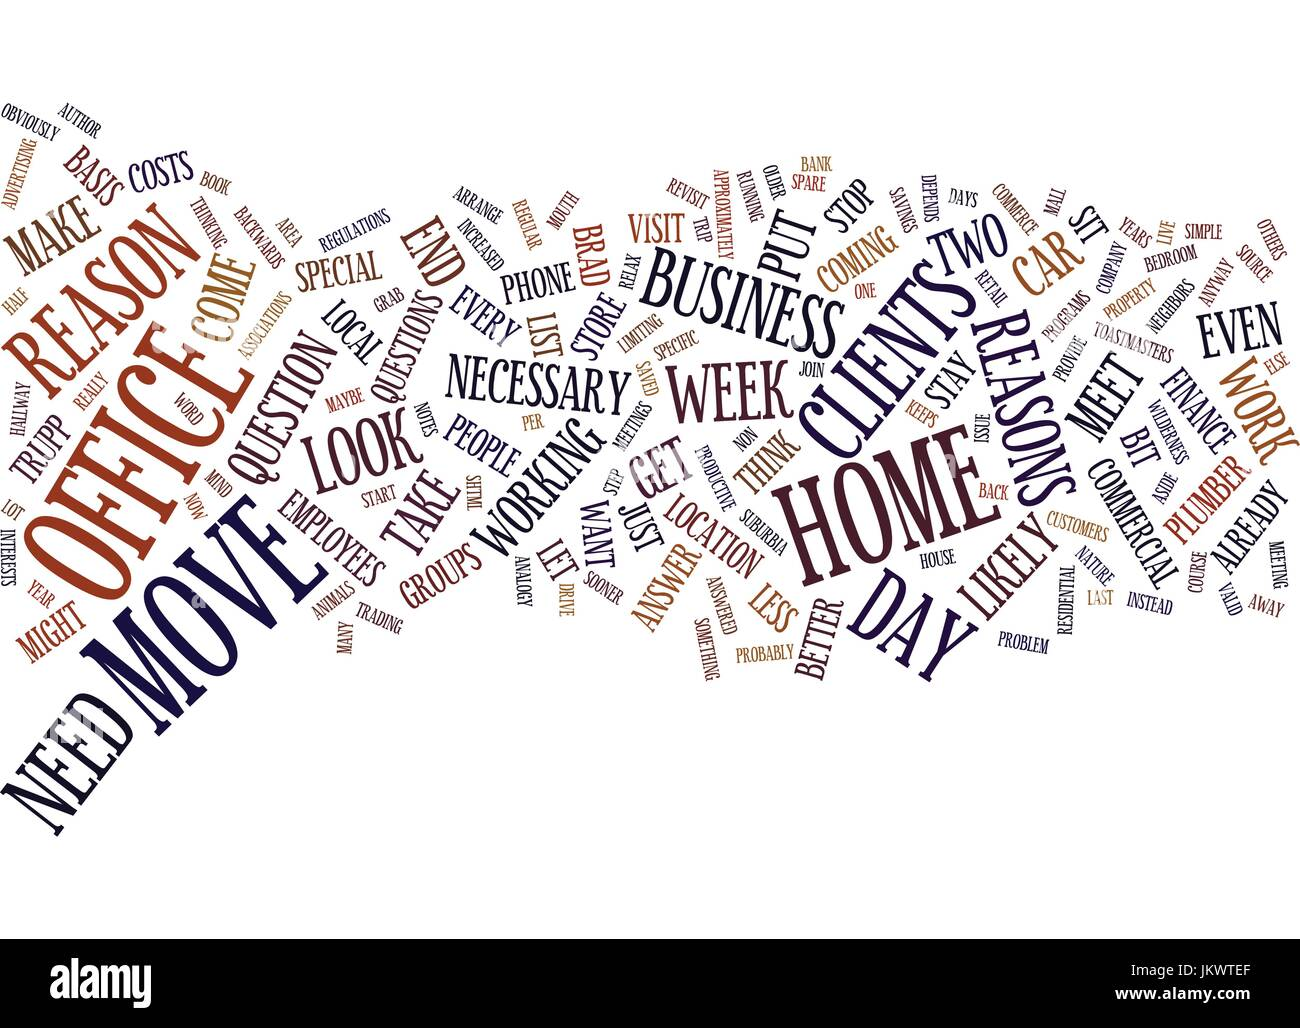 YOUR HOME OFFICE STAY PUT OR MOVE OUT Text Background Word Cloud Concept - Stock Image